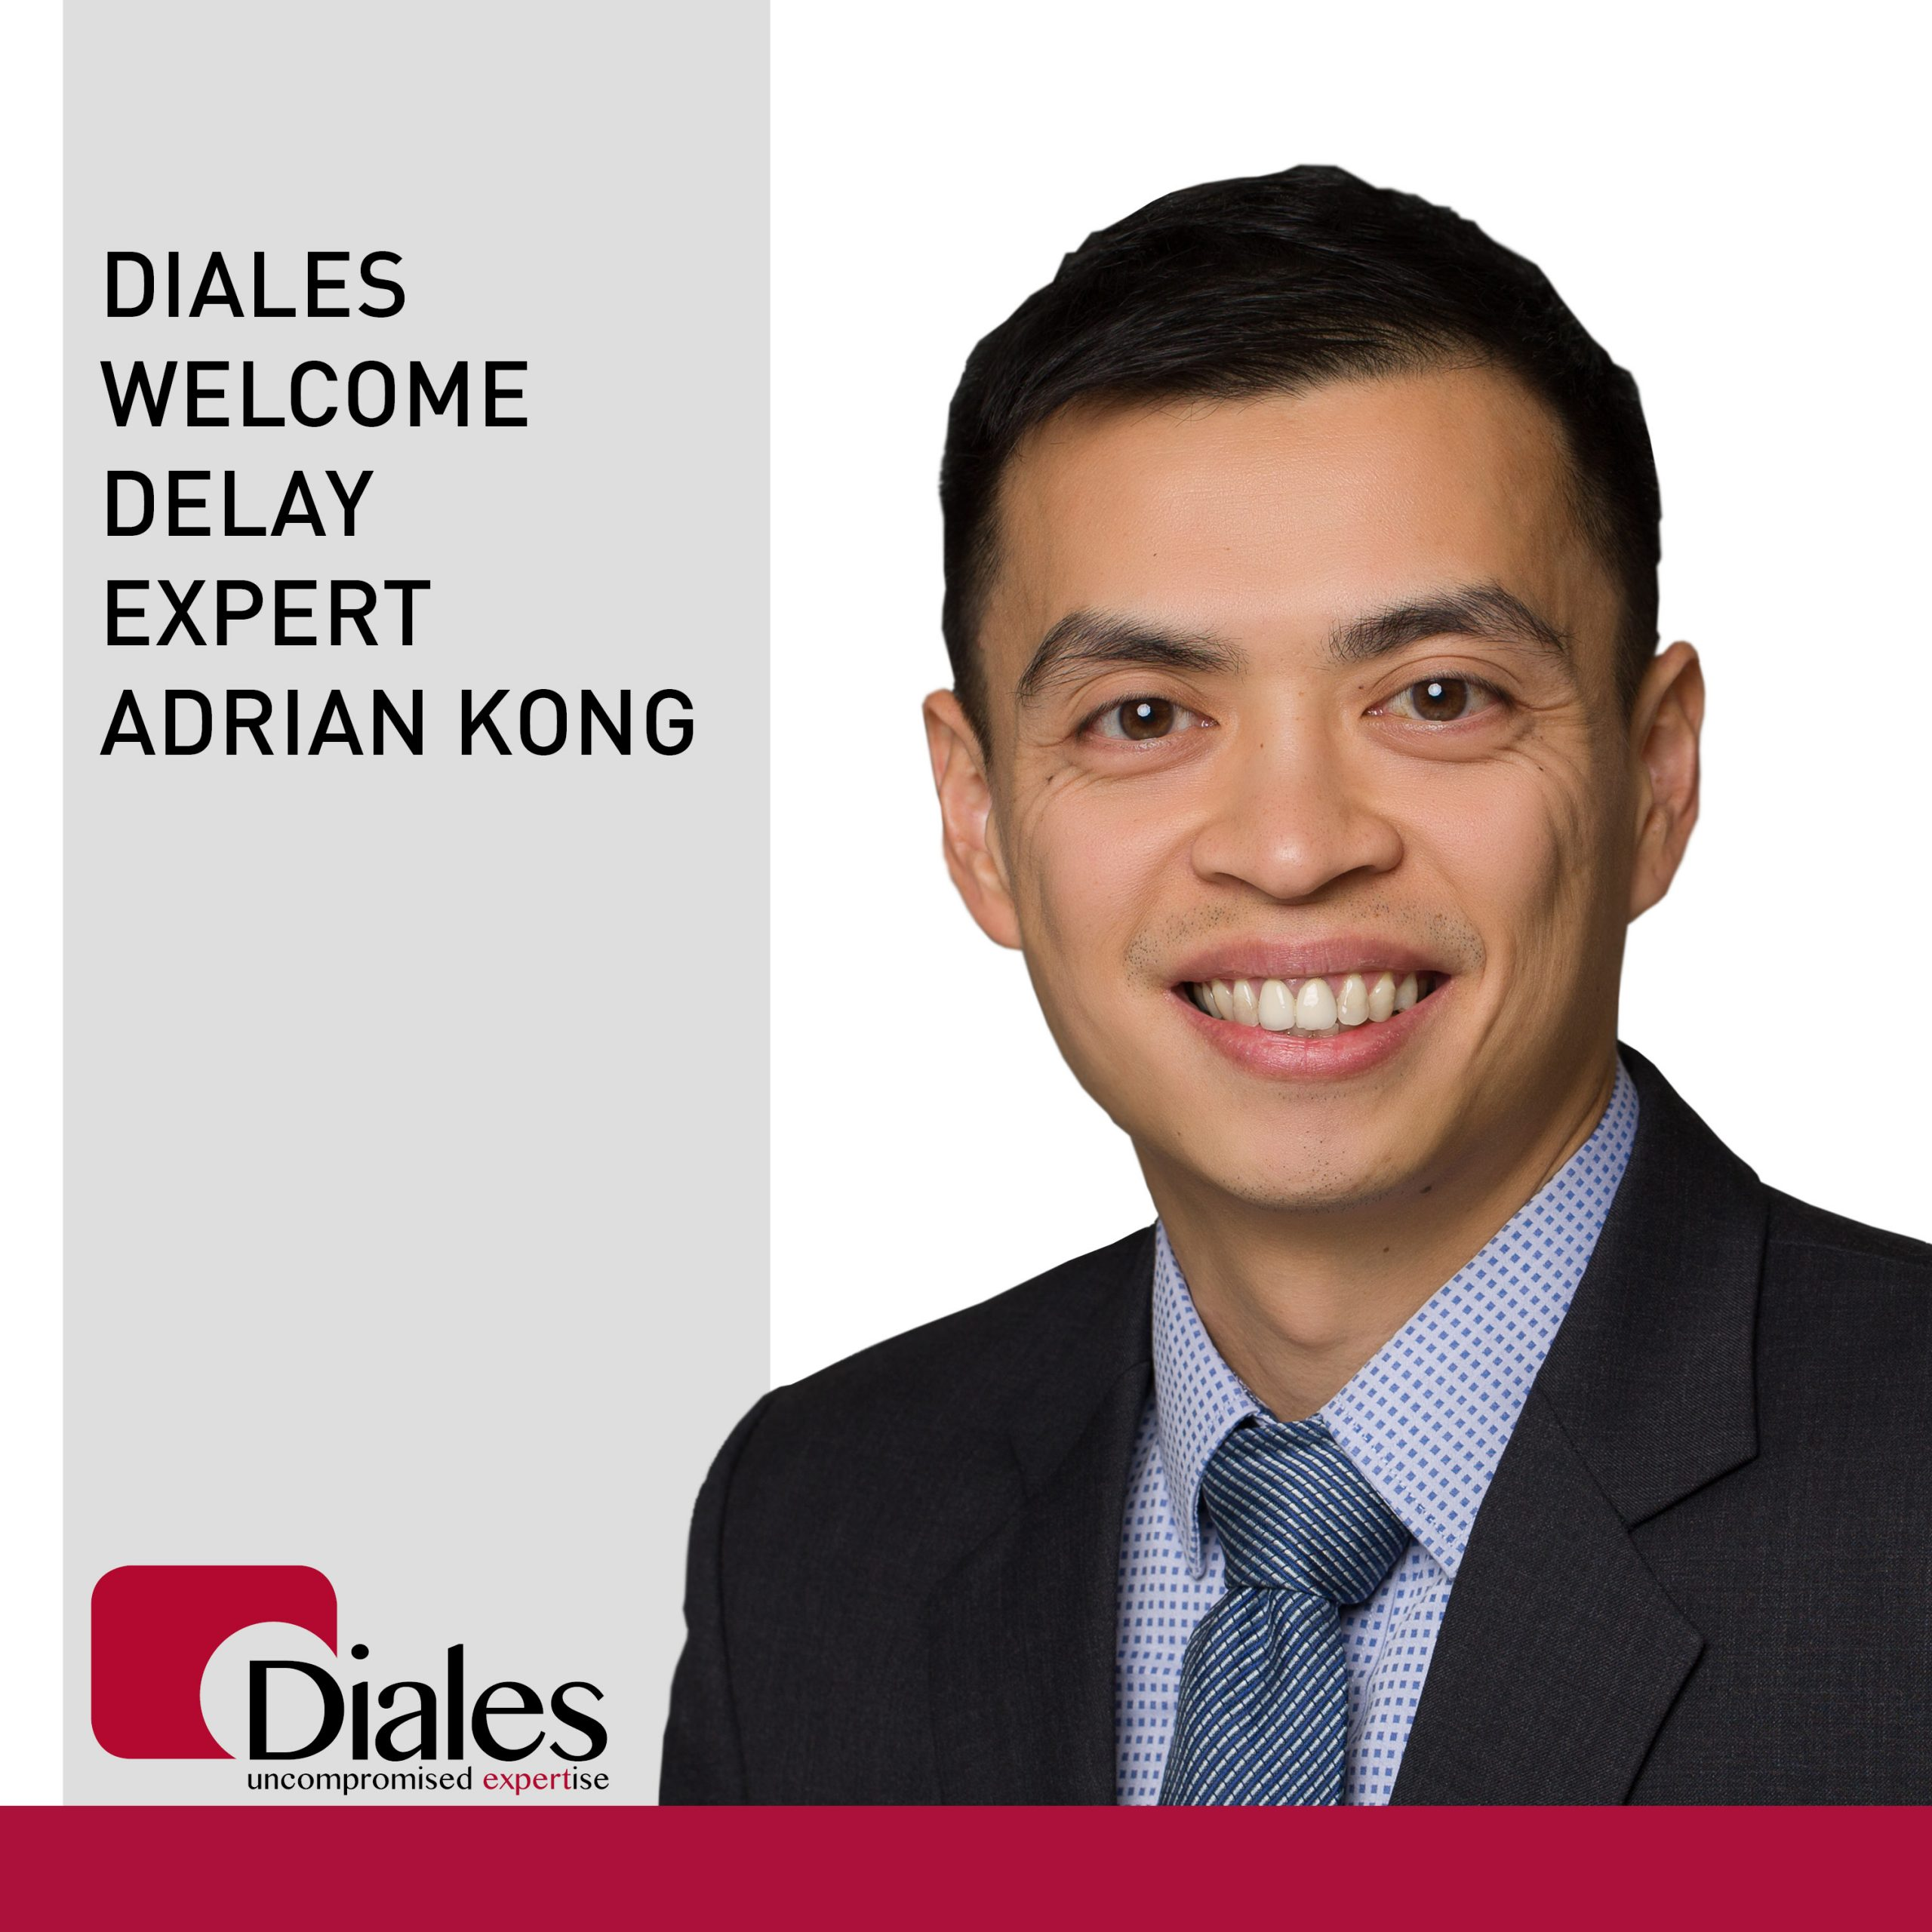 Diales welcome Adrian Kong to its team of experts